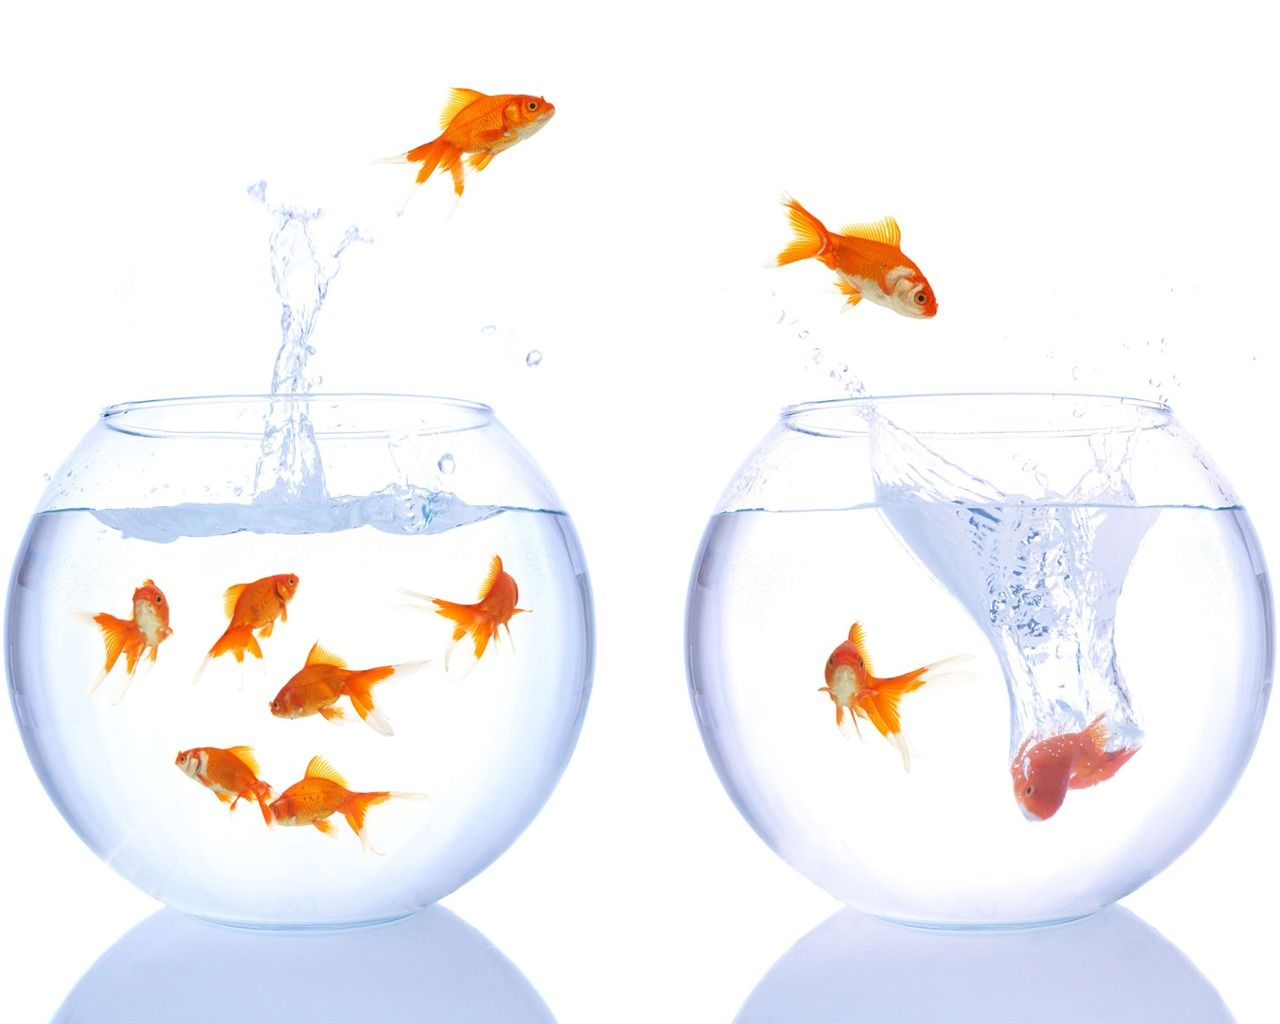 Goldfish jumping from one bowl to another goldfish jump for Remplir un aquarium poisson rouge